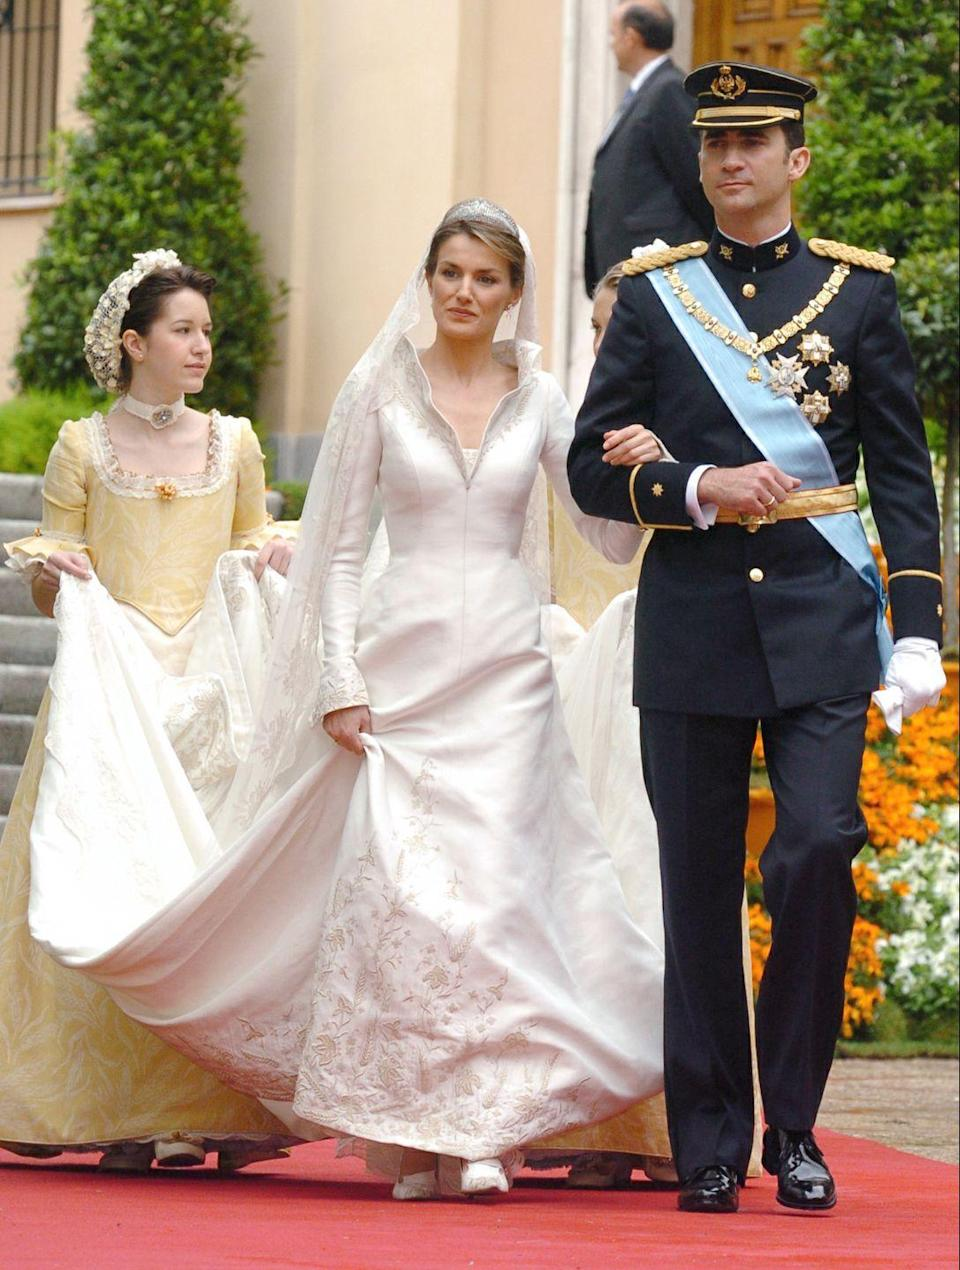 """<p>The always chic Queen Letizia walked down the aisle in a collared <span class=""""redactor-unlink"""">Manuel Pertegaz</span> gown that featured a stunning train.</p>"""